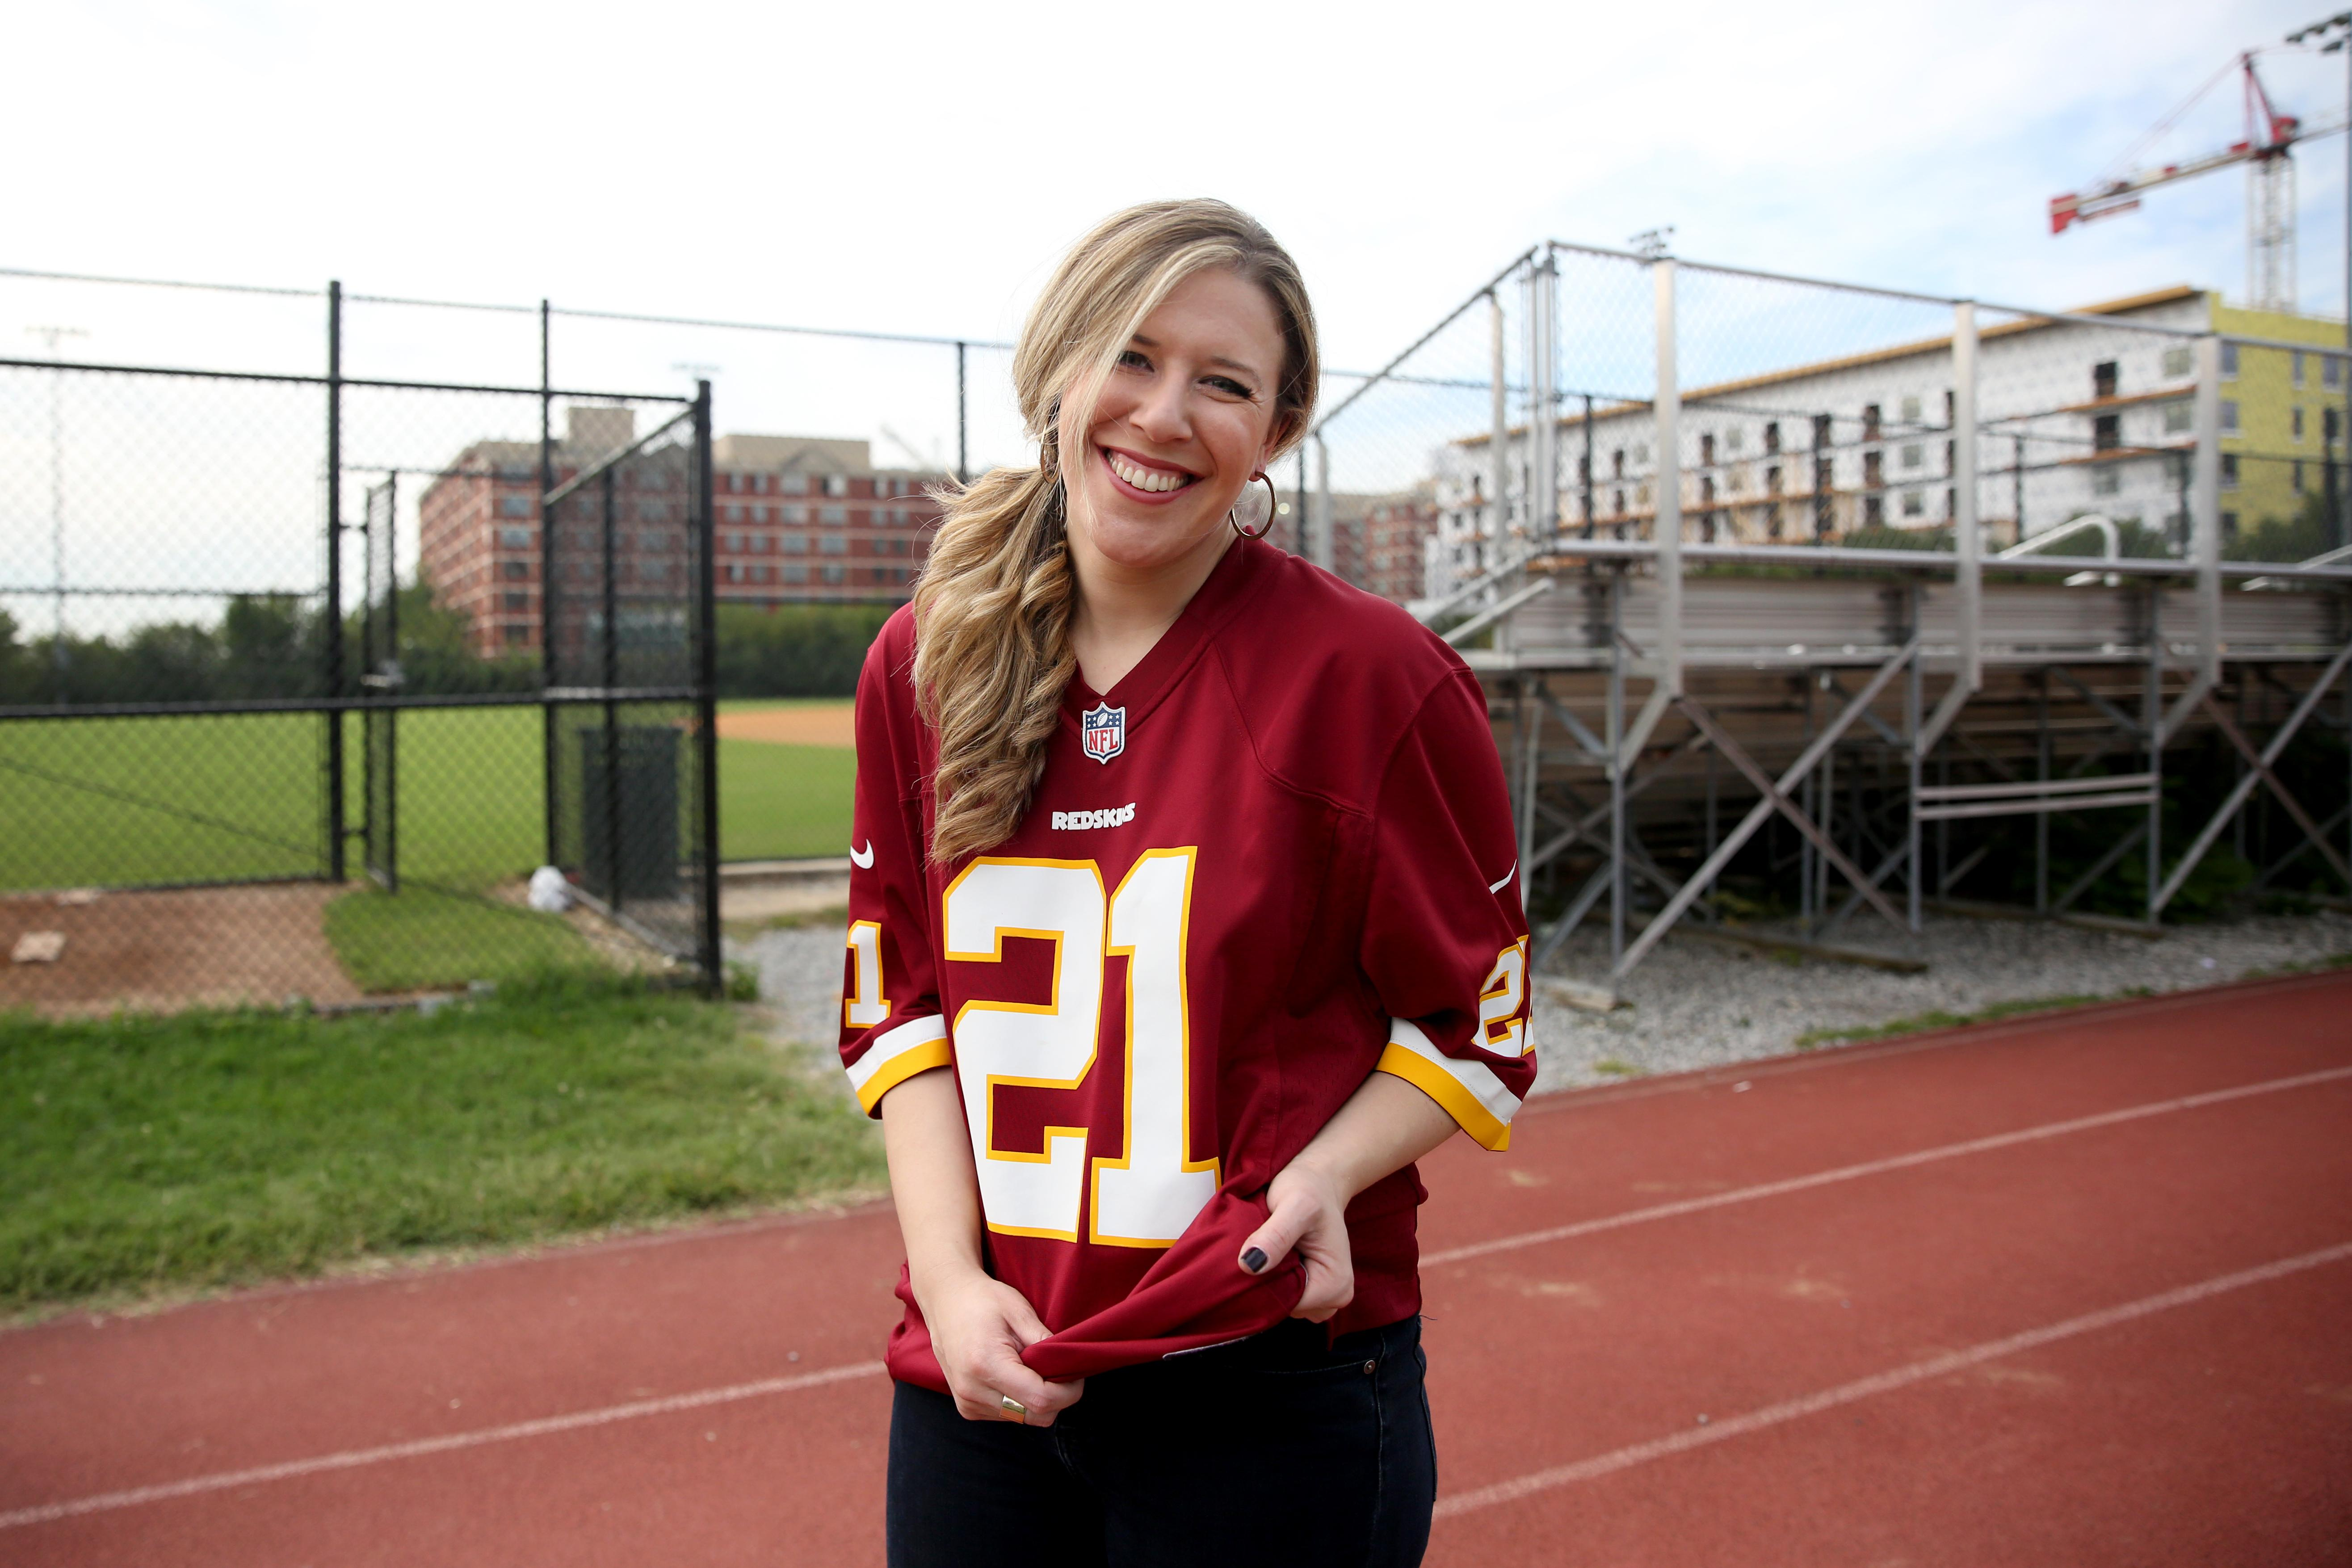 The ultimate sporty-girl fan: A football jersey, jeans, and hair up is all you need here. Show those guys you mean business. (Image: Amanda Andrade-Rhoades/ DC Refined)